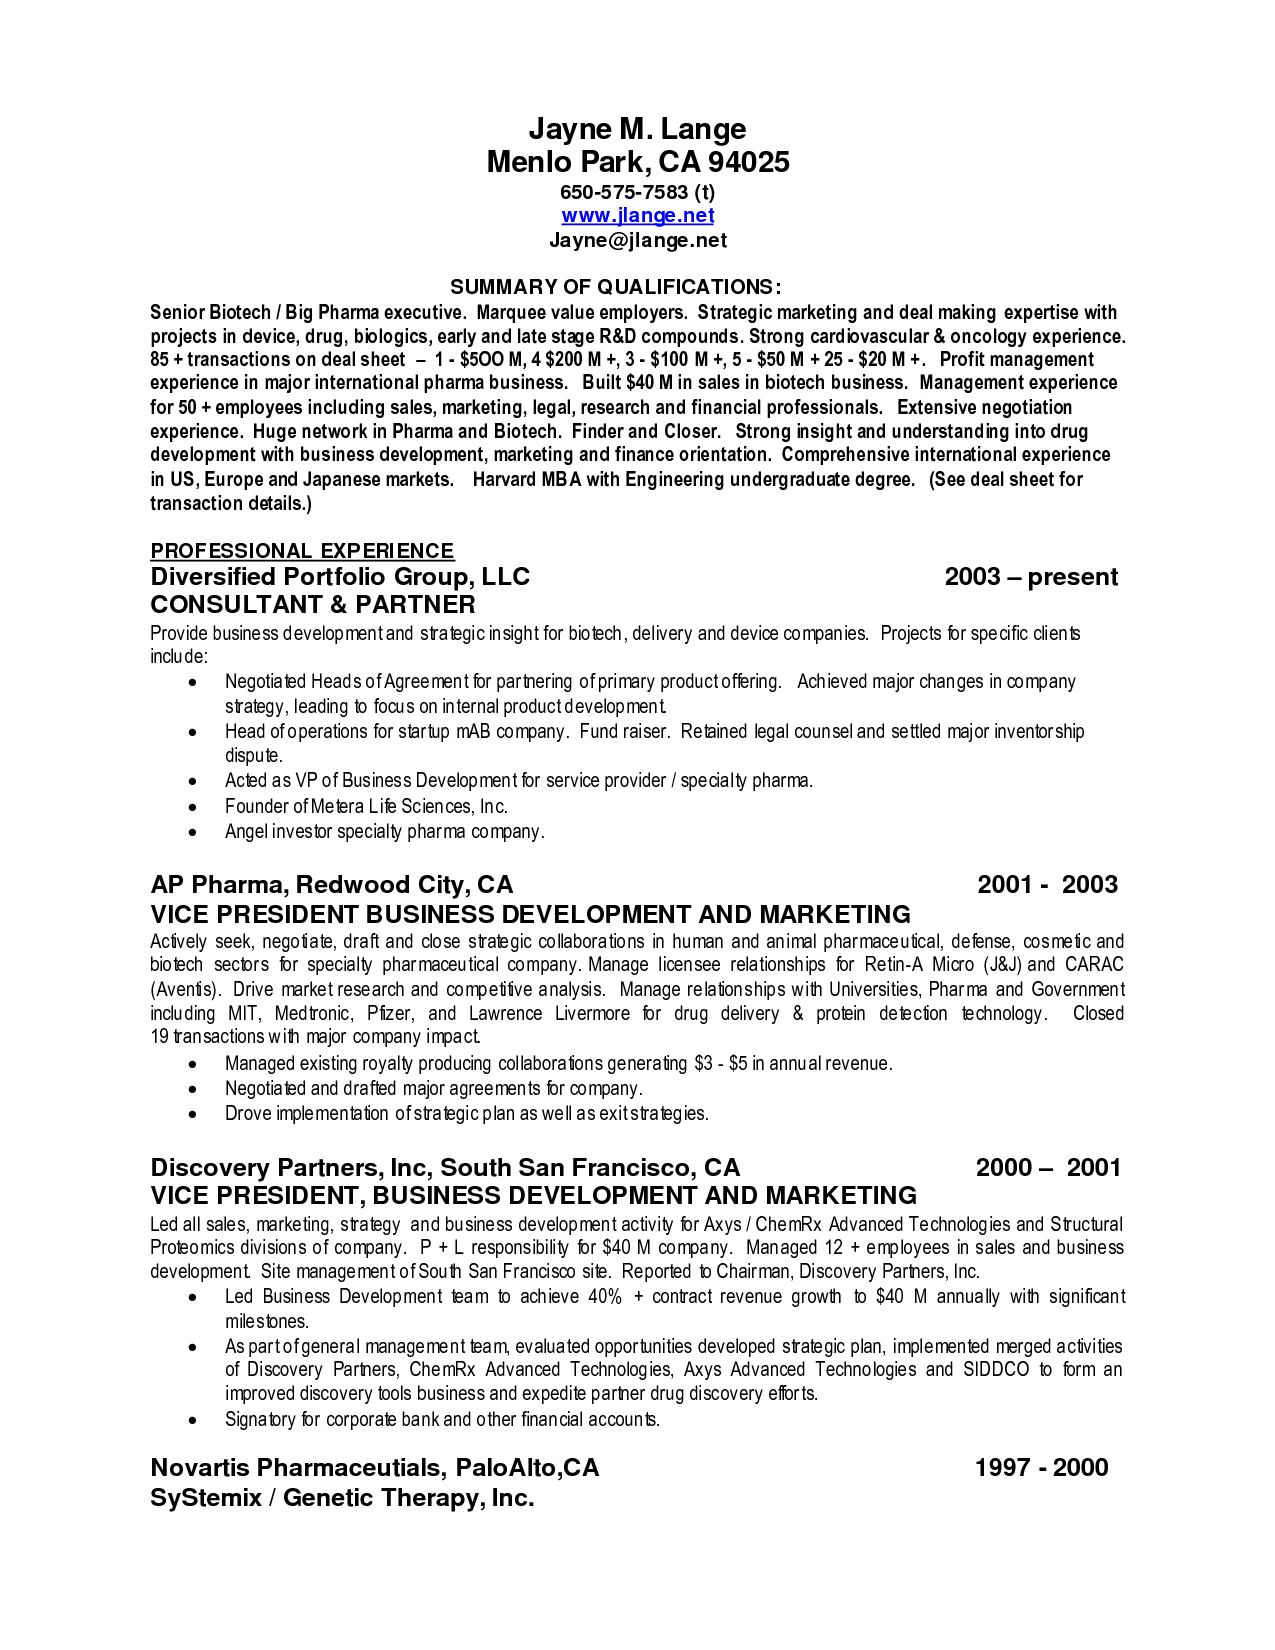 Examples Of Summary Of Qualifications For Resume